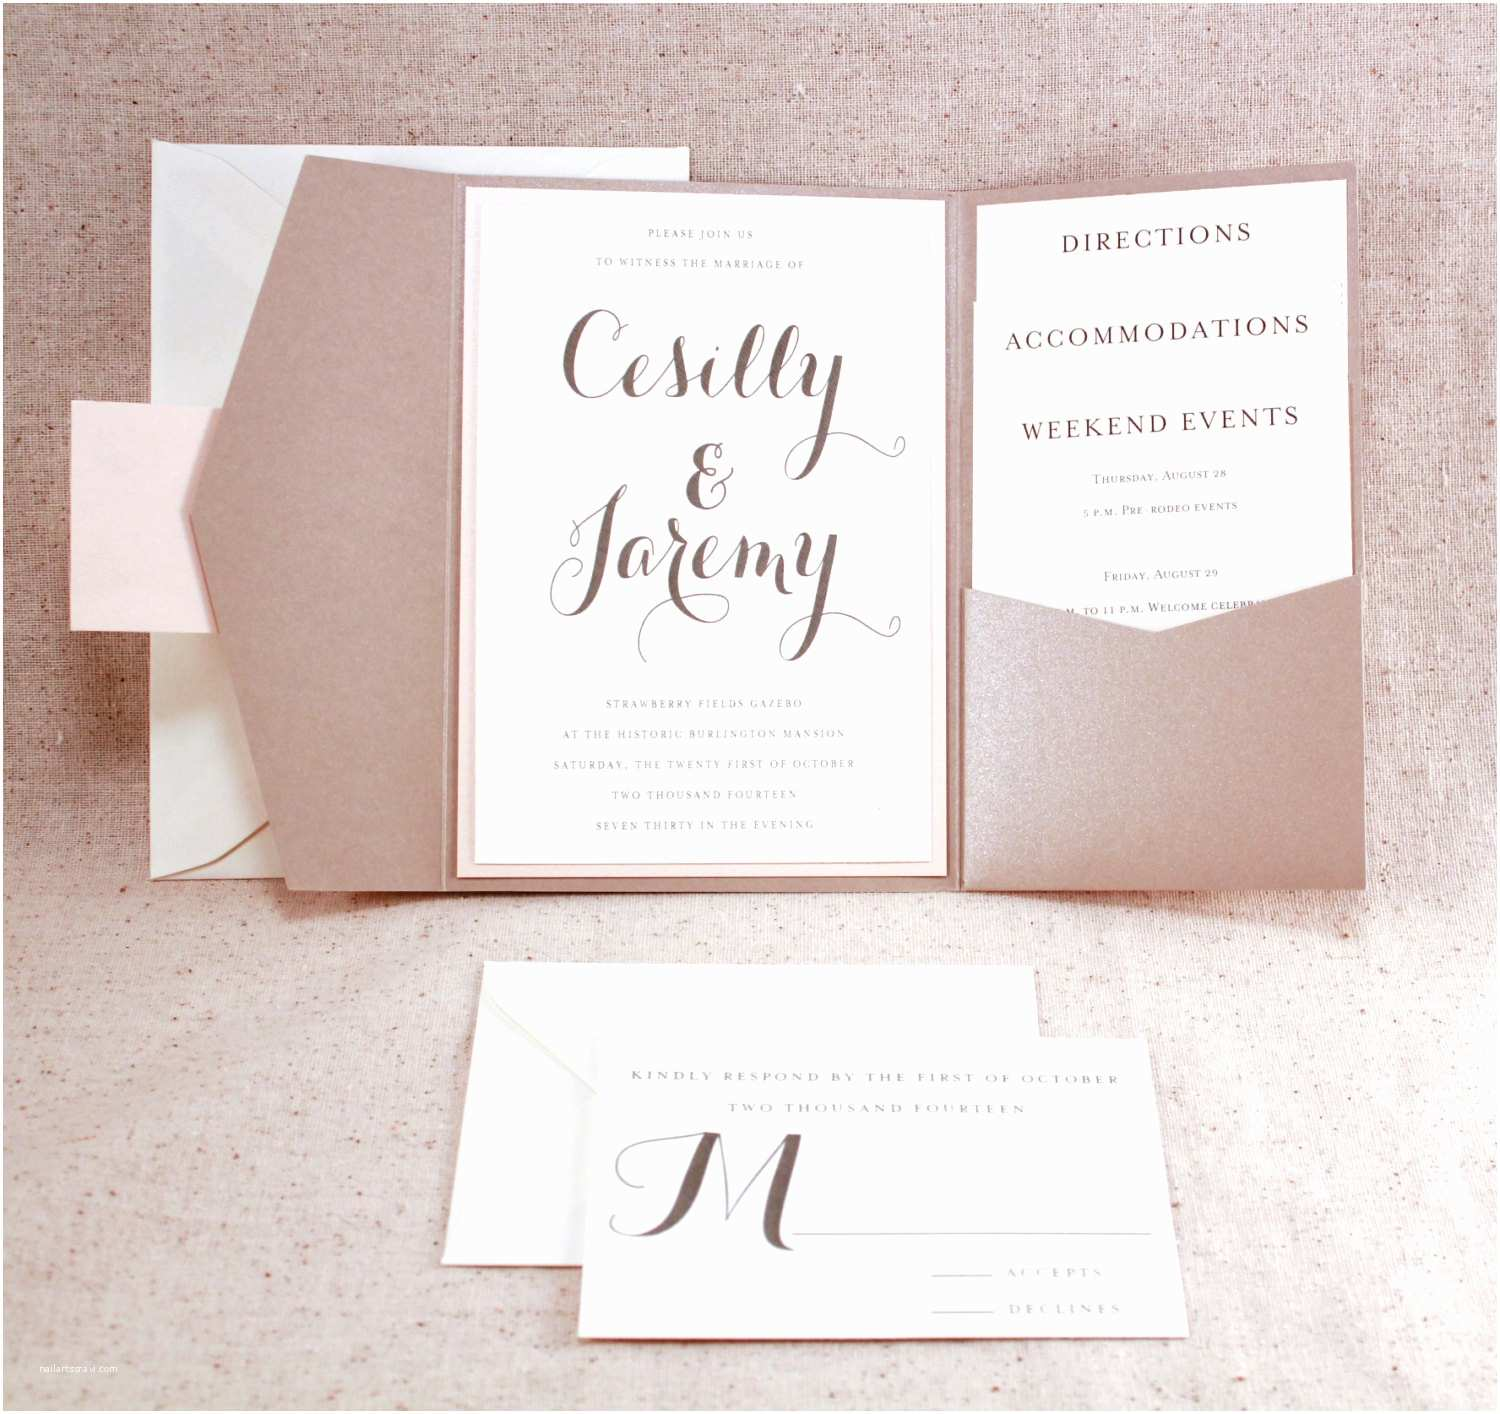 Elegant Wedding Invitation Sets Wedding Invitation Set sophisticated Elegance by